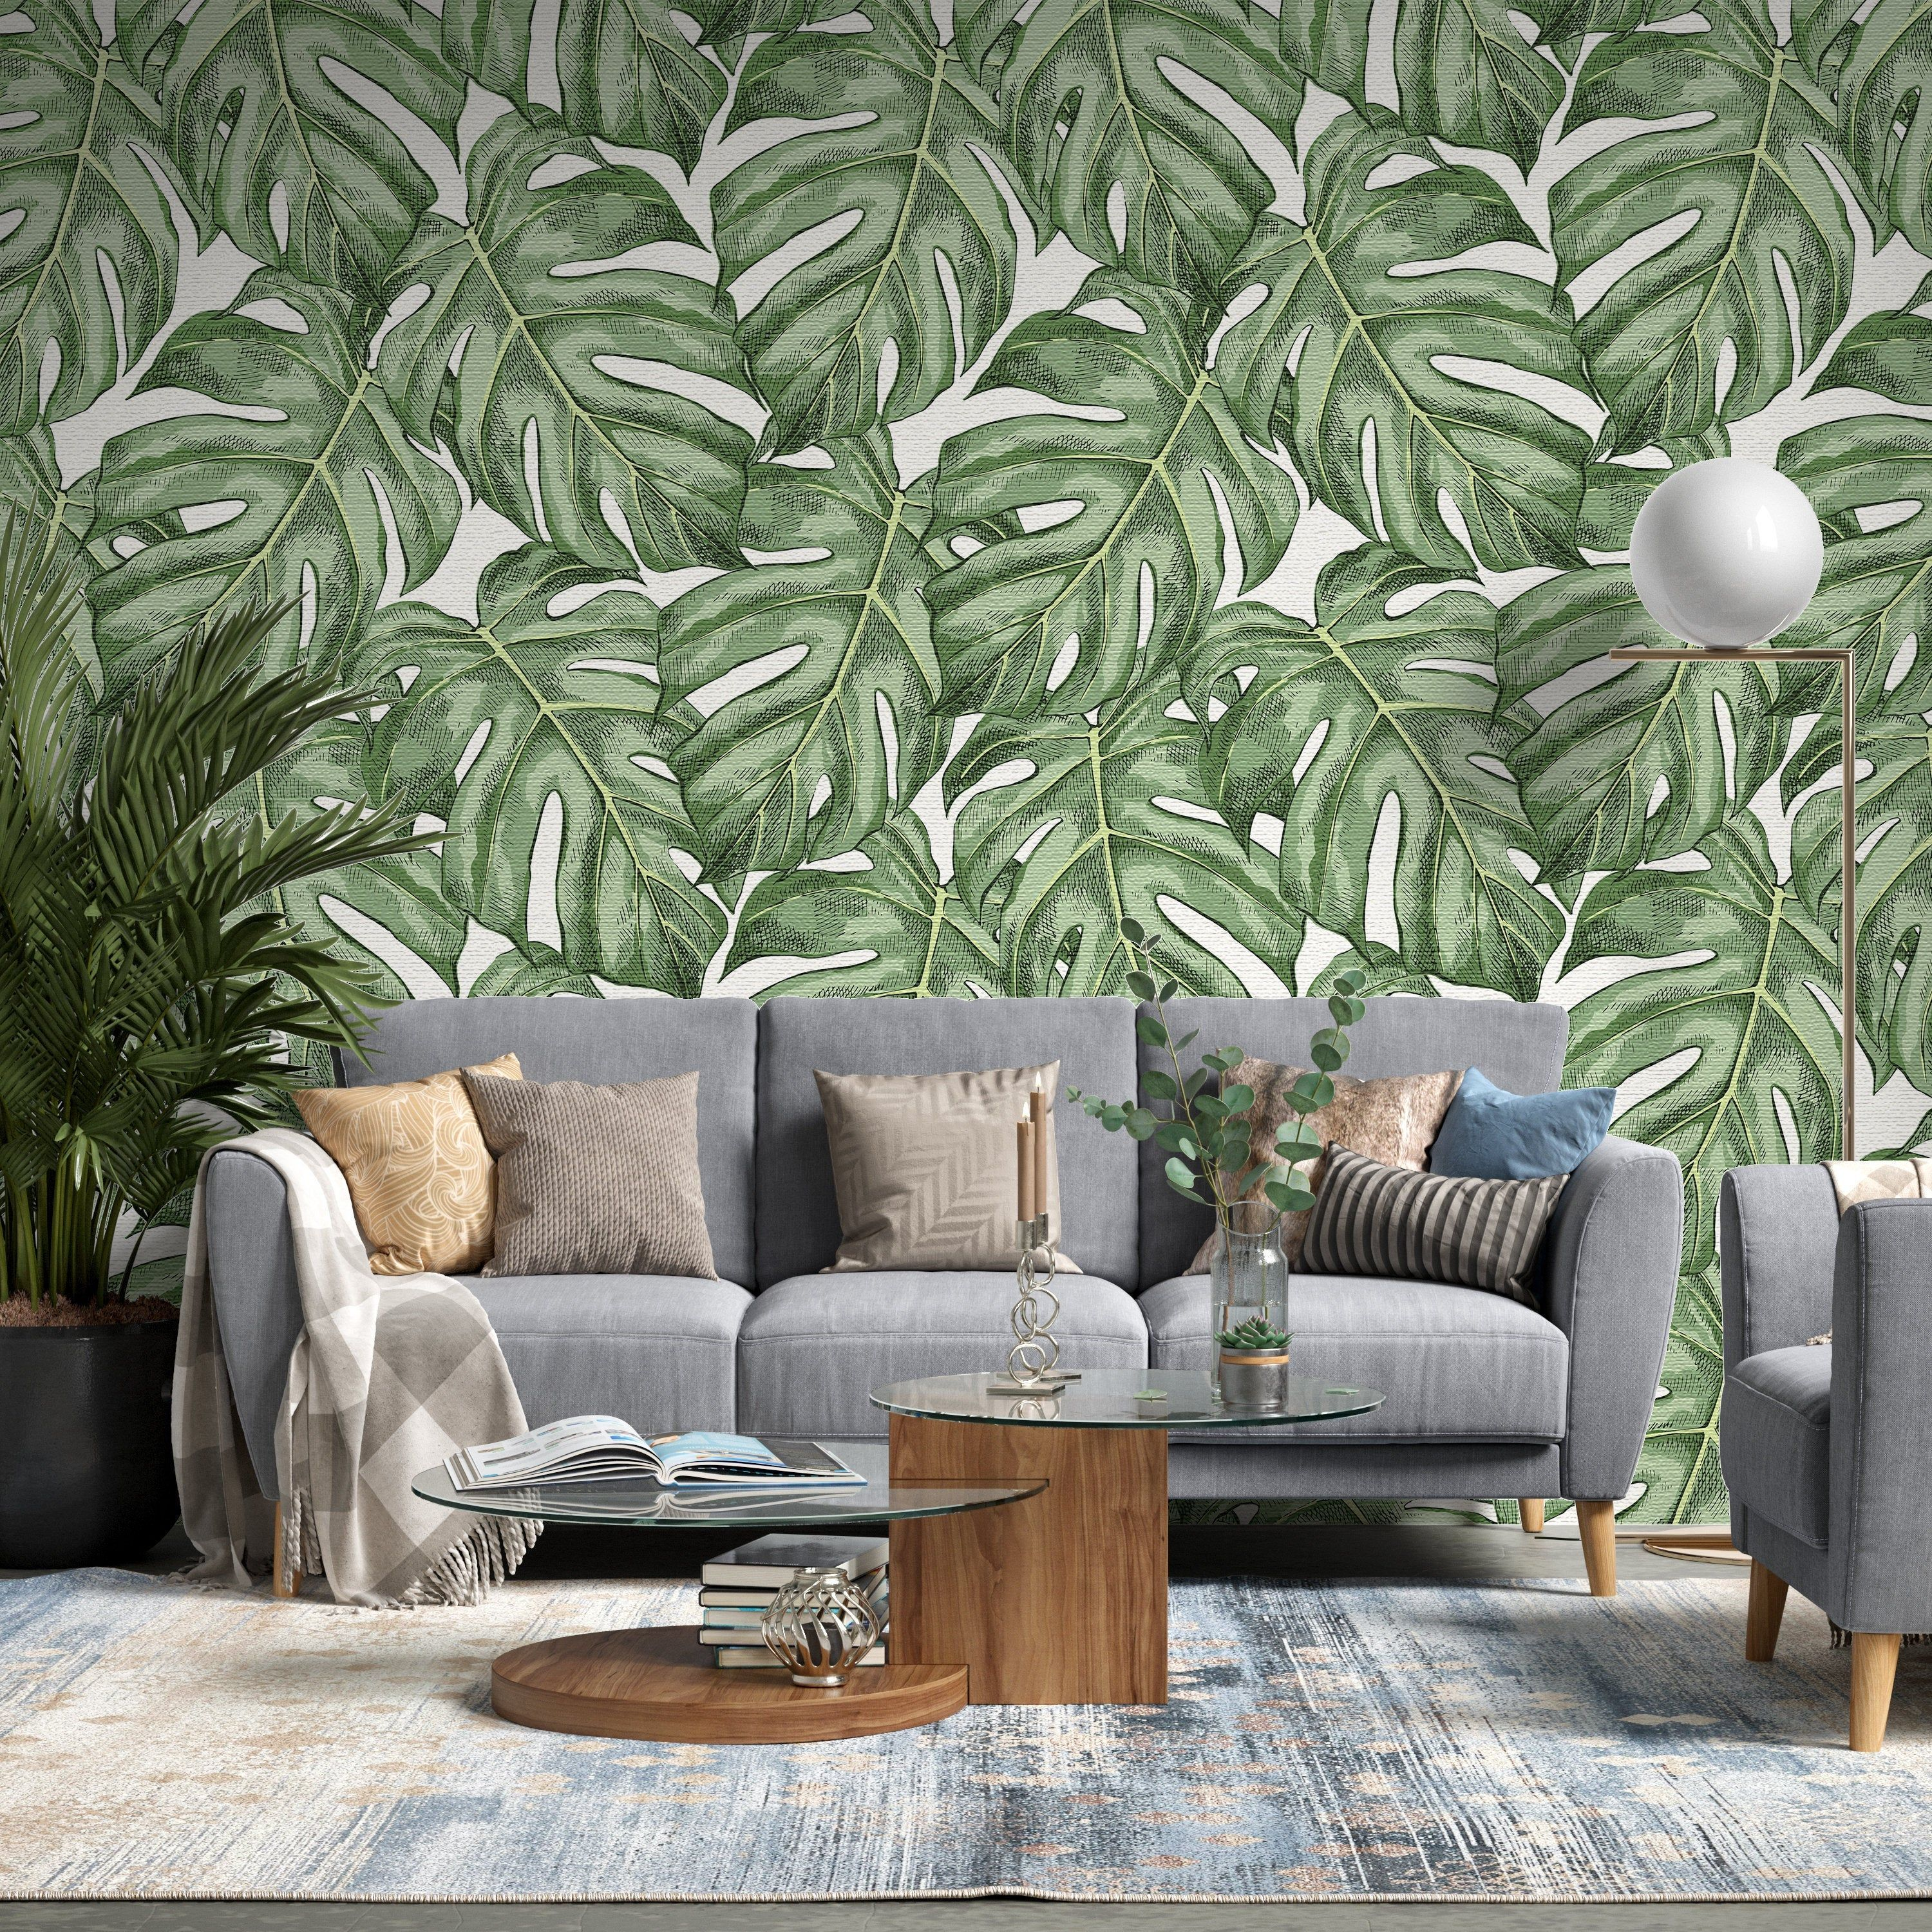 Removable Wallpaper Green Leaf Floral Peel And Stick Etsy Removable Wallpaper Special Wallpaper Traditional Wallpaper